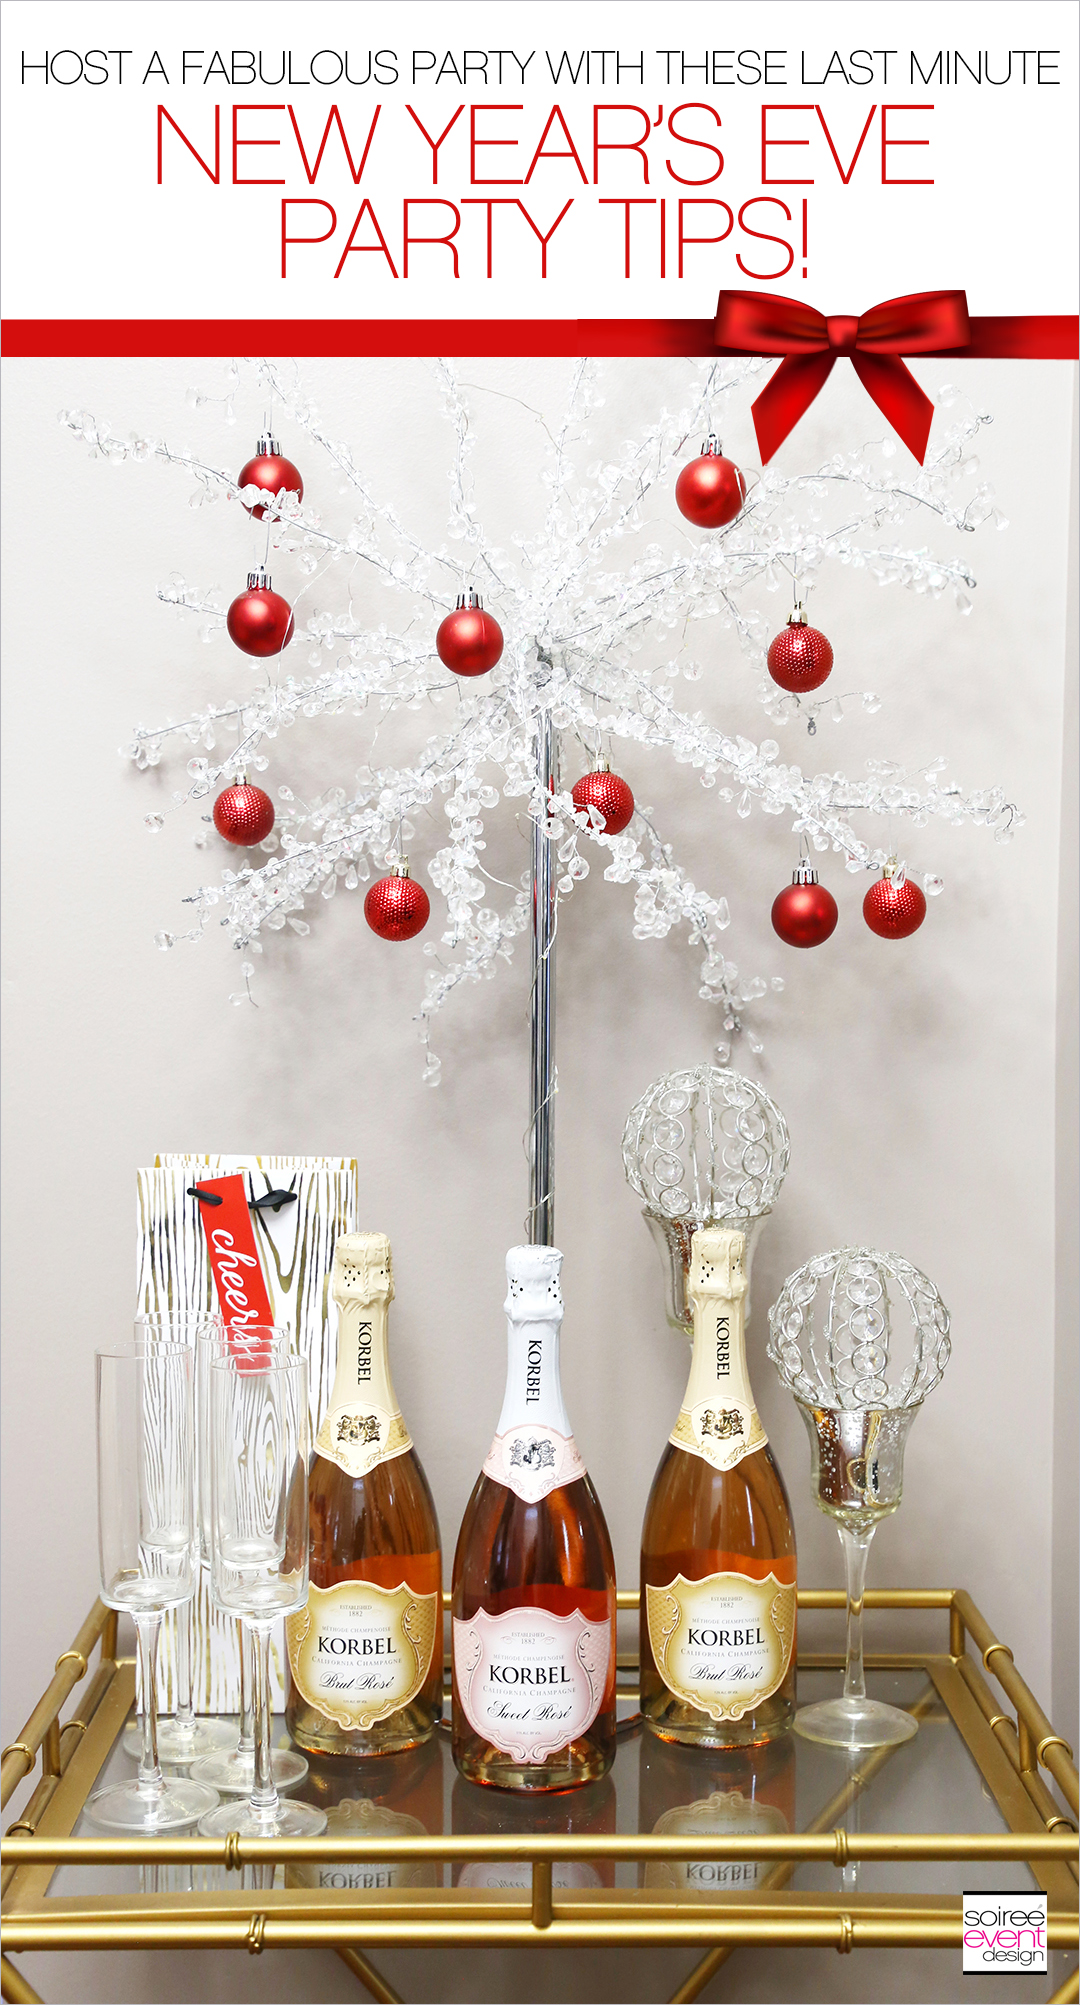 New Years Eve Party Tips - Bubbly Bar